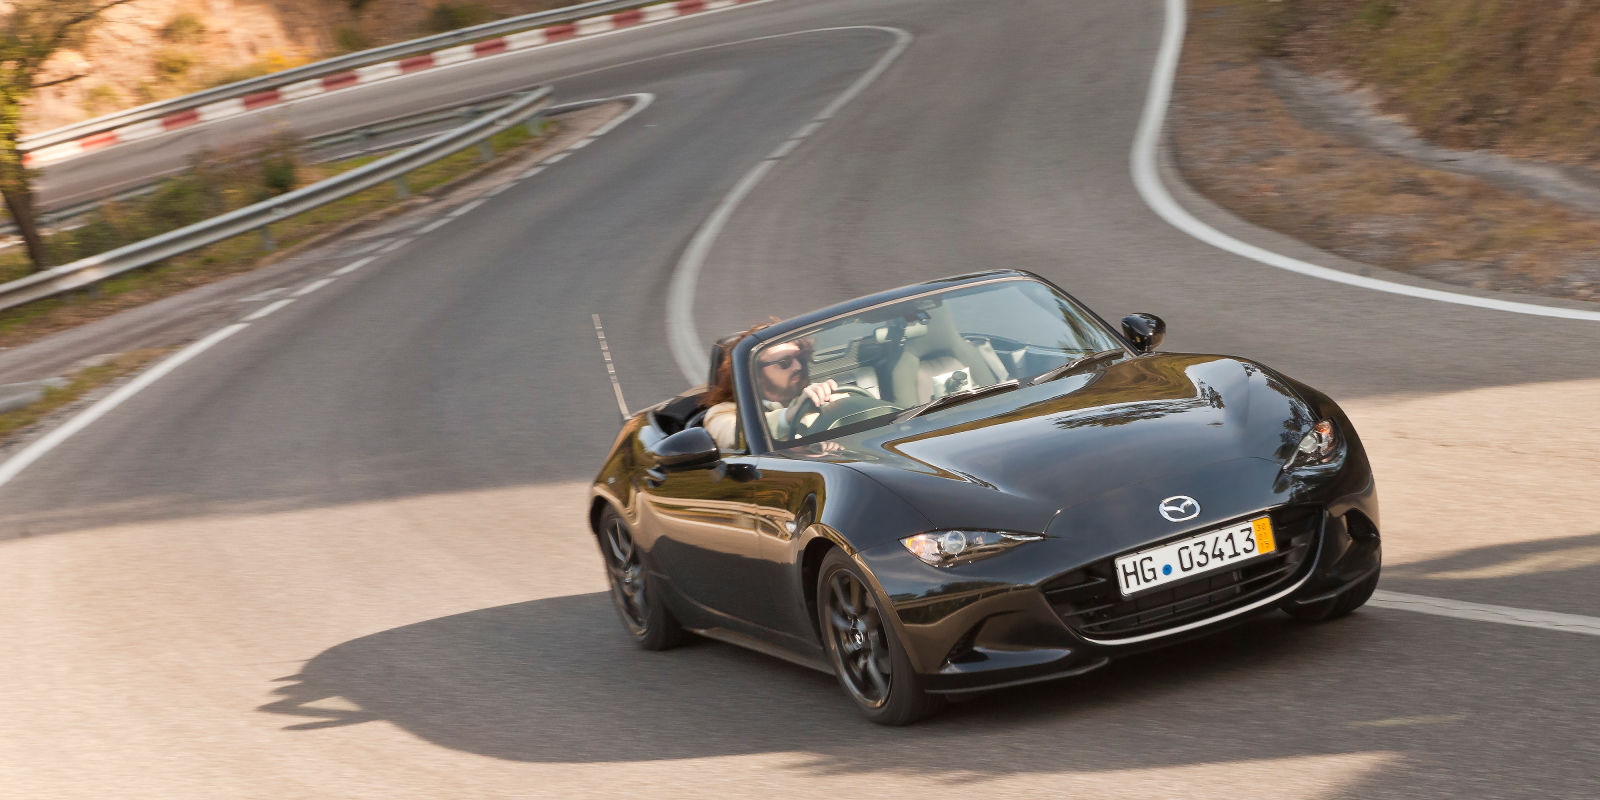 Why The Miata Is A Great Car For New Drivers